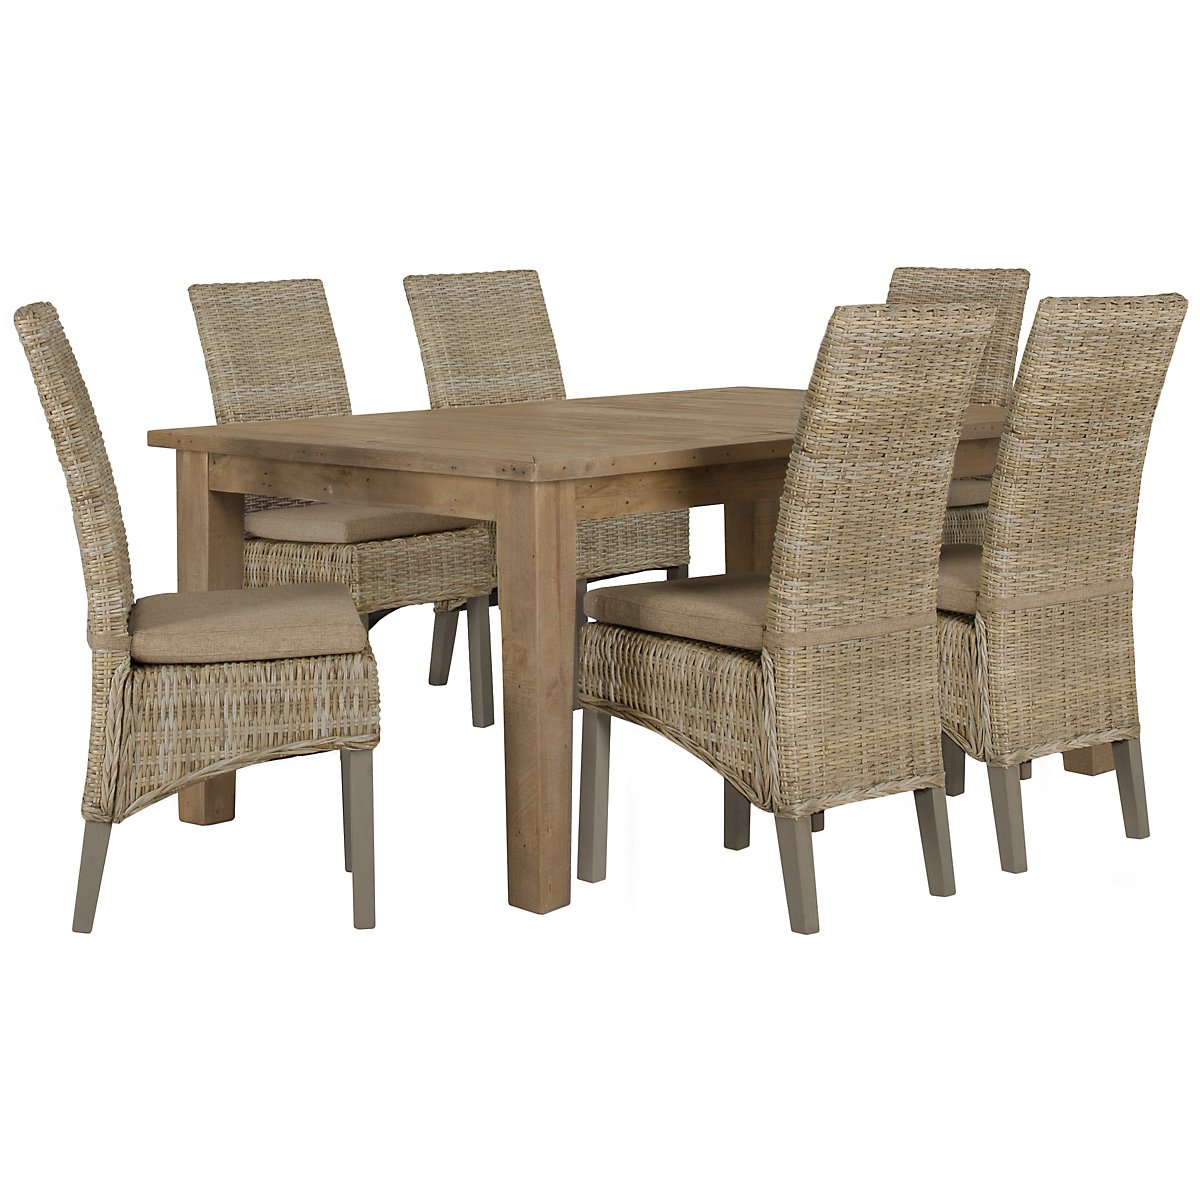 Jaden Light Tone Rectangular Table & 4 Cushioned Woven Chairs